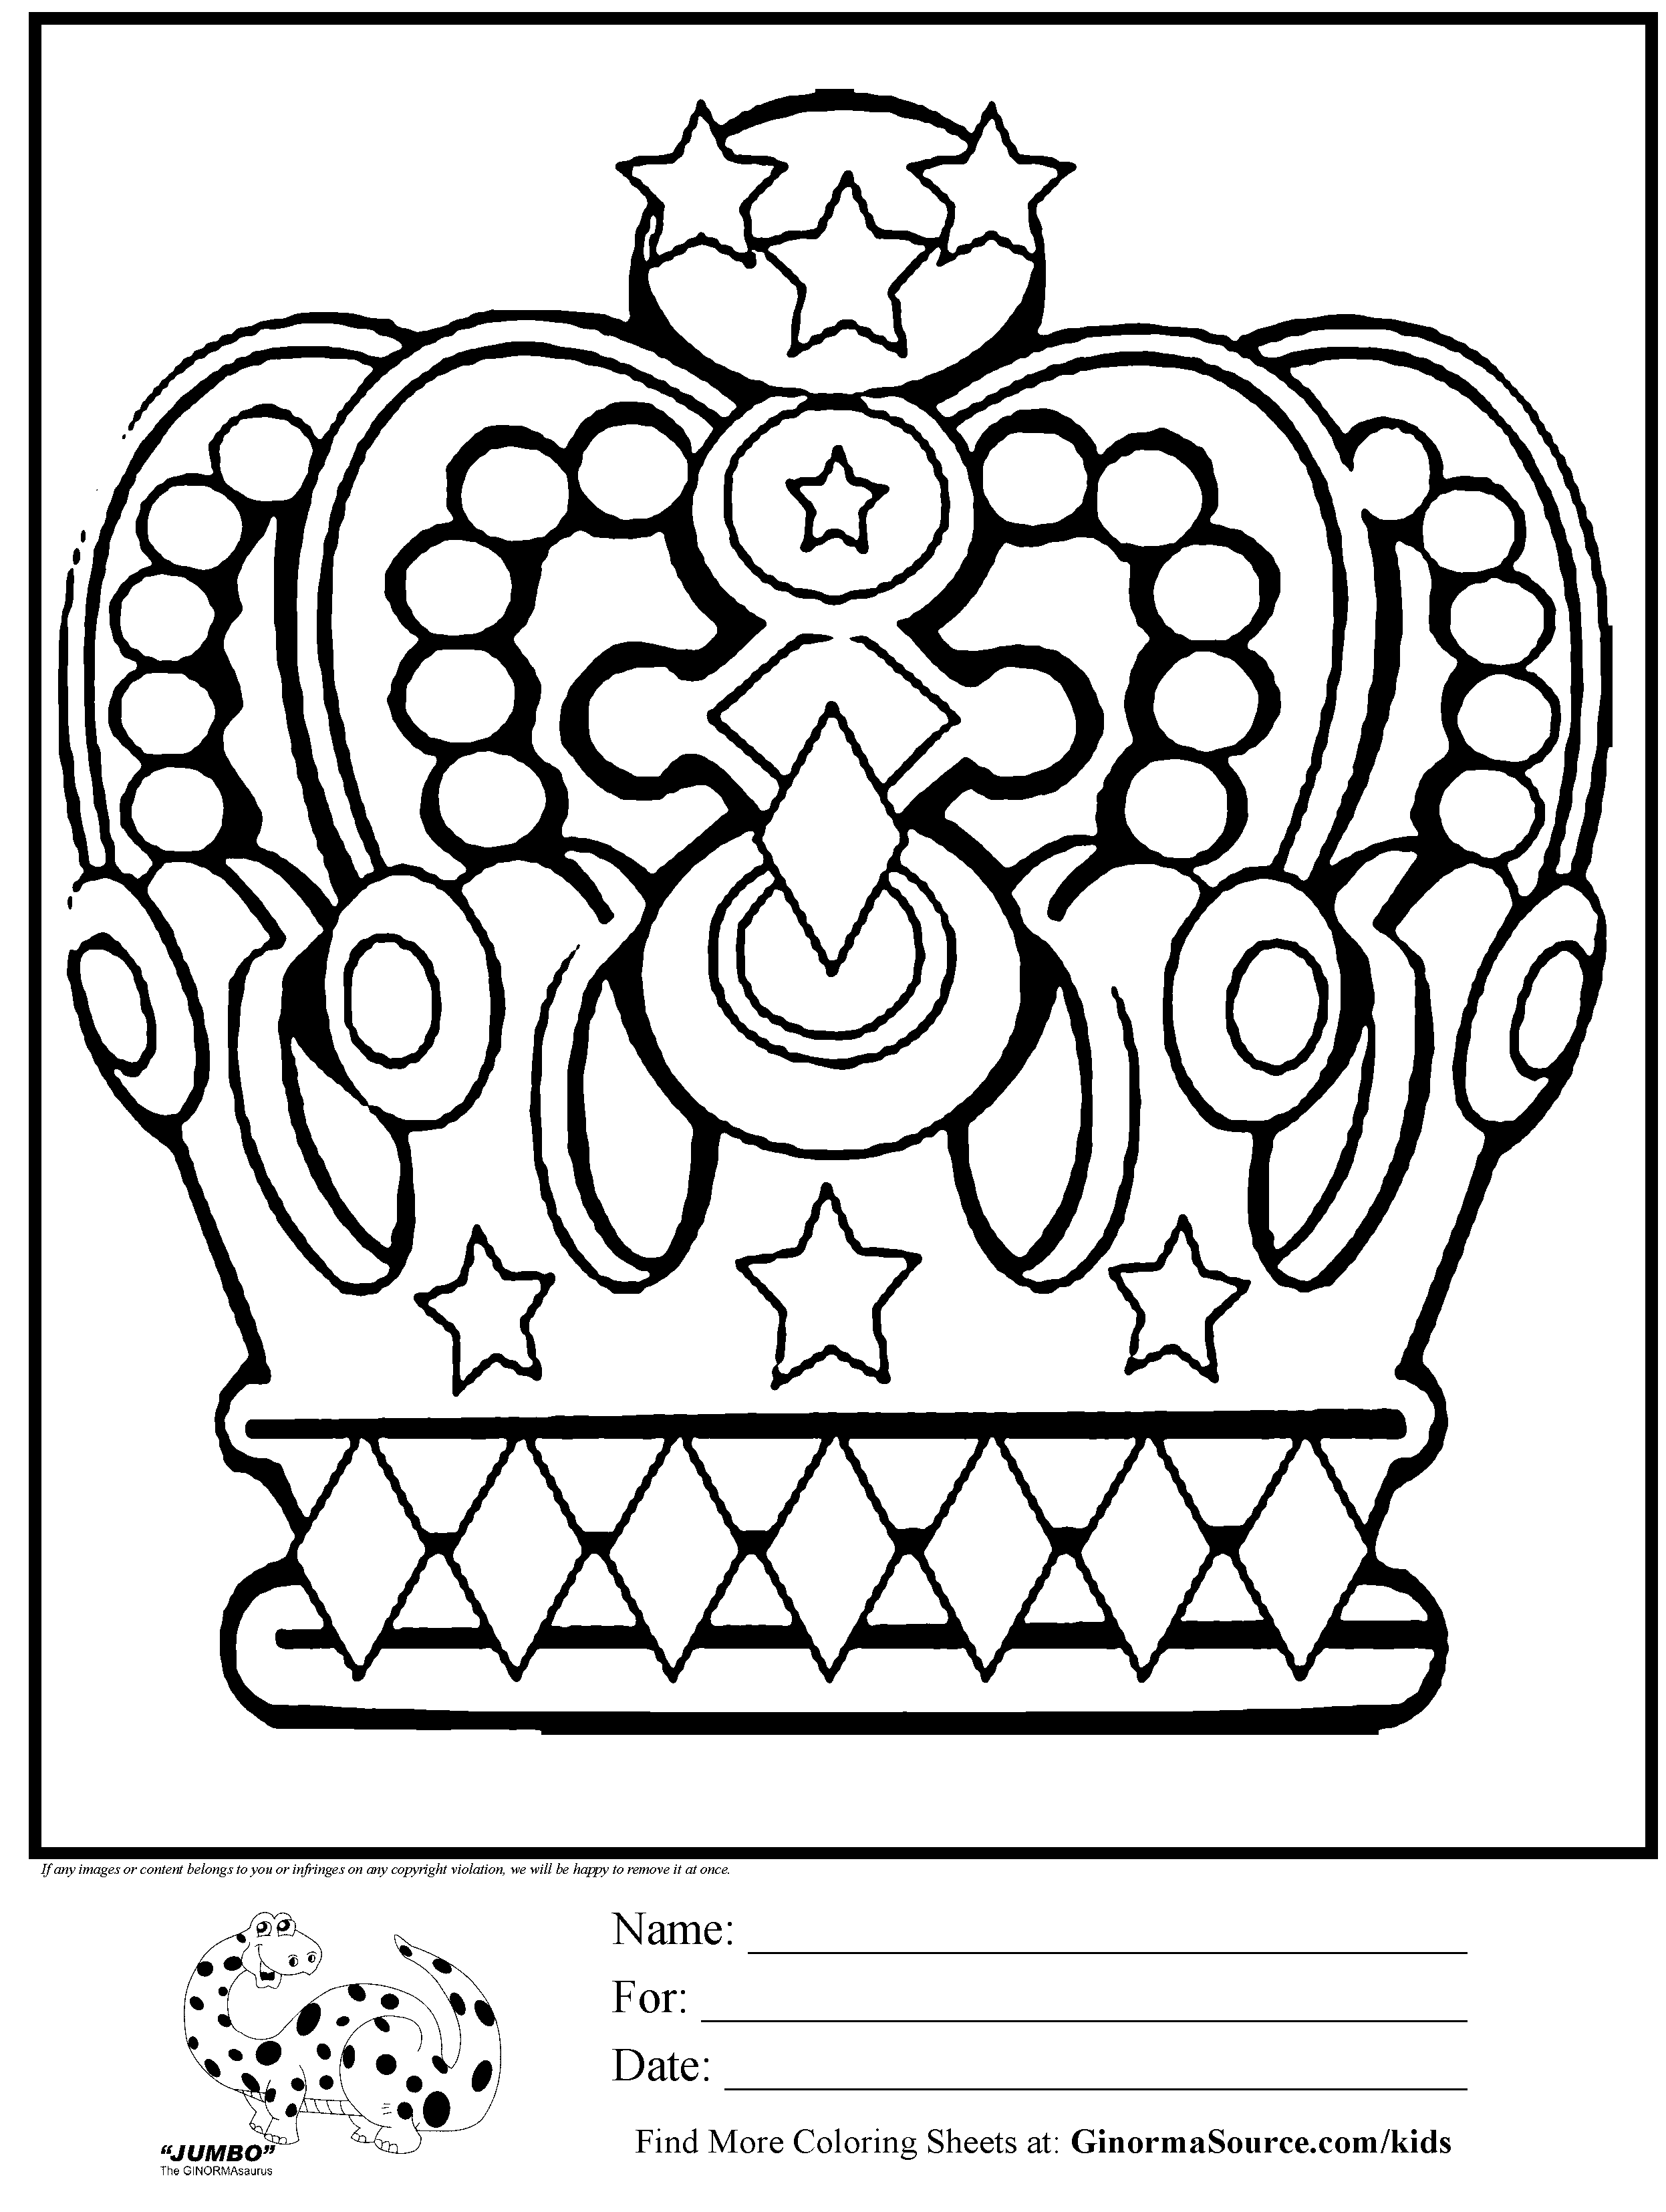 C is for Crown; coloring pages for other letters